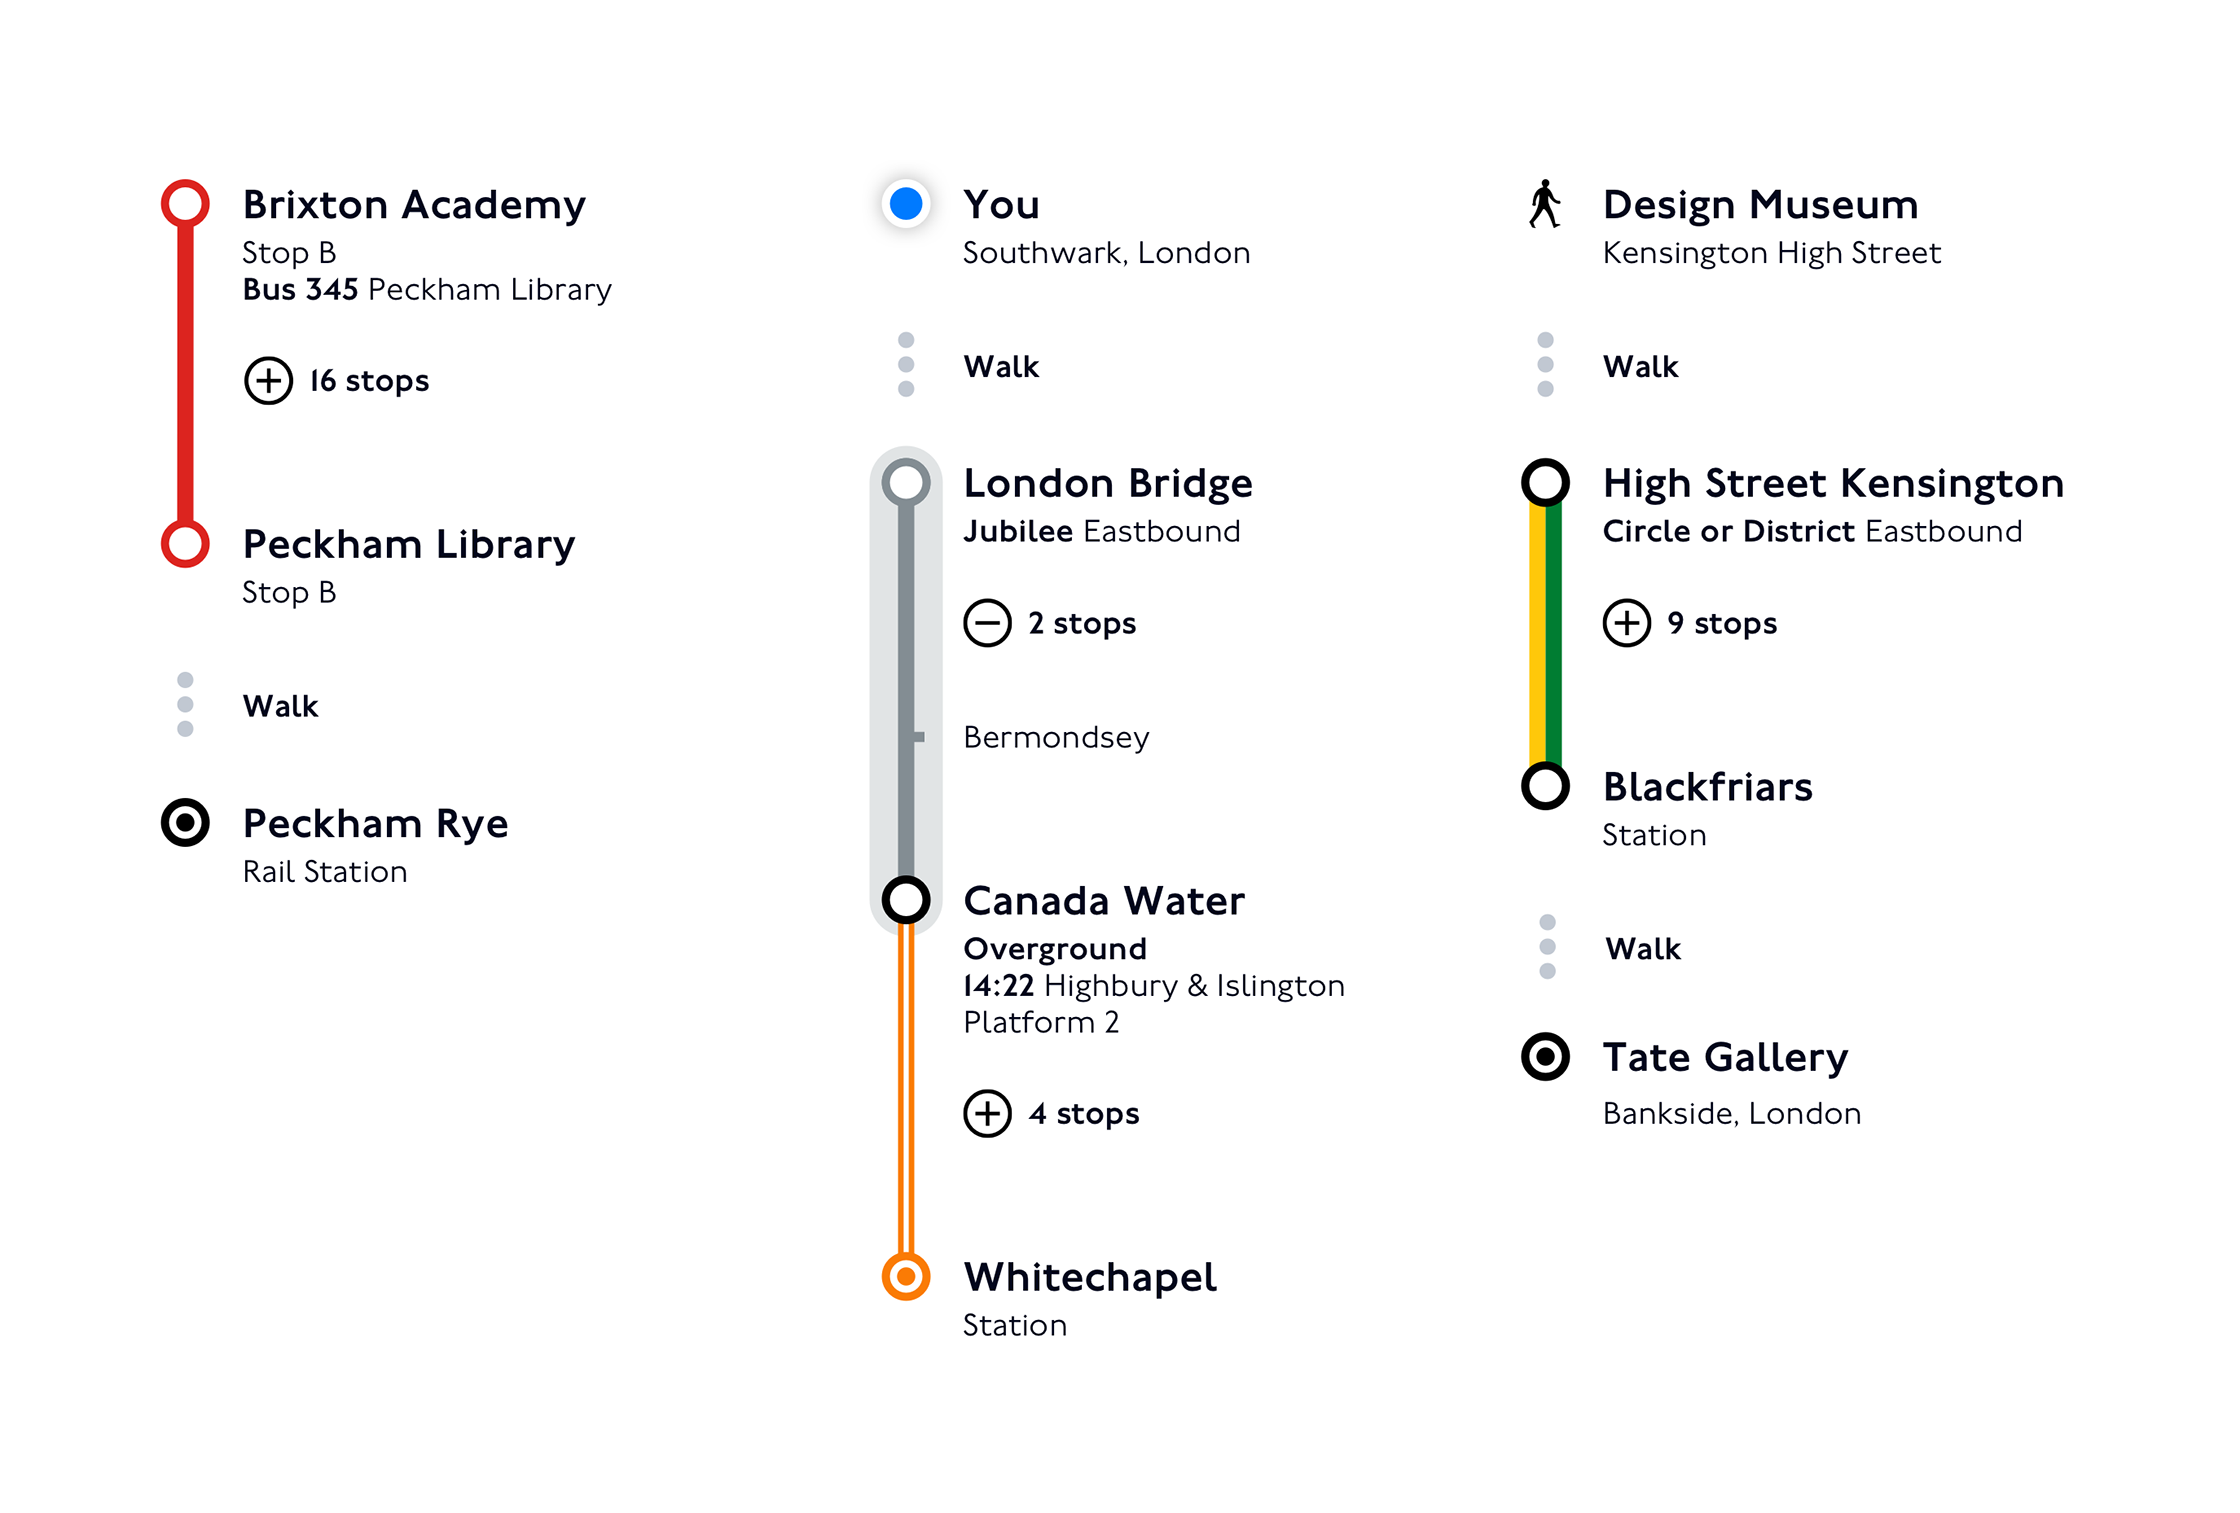 An image of journey routes using the same design language as used for the digital live Tube map